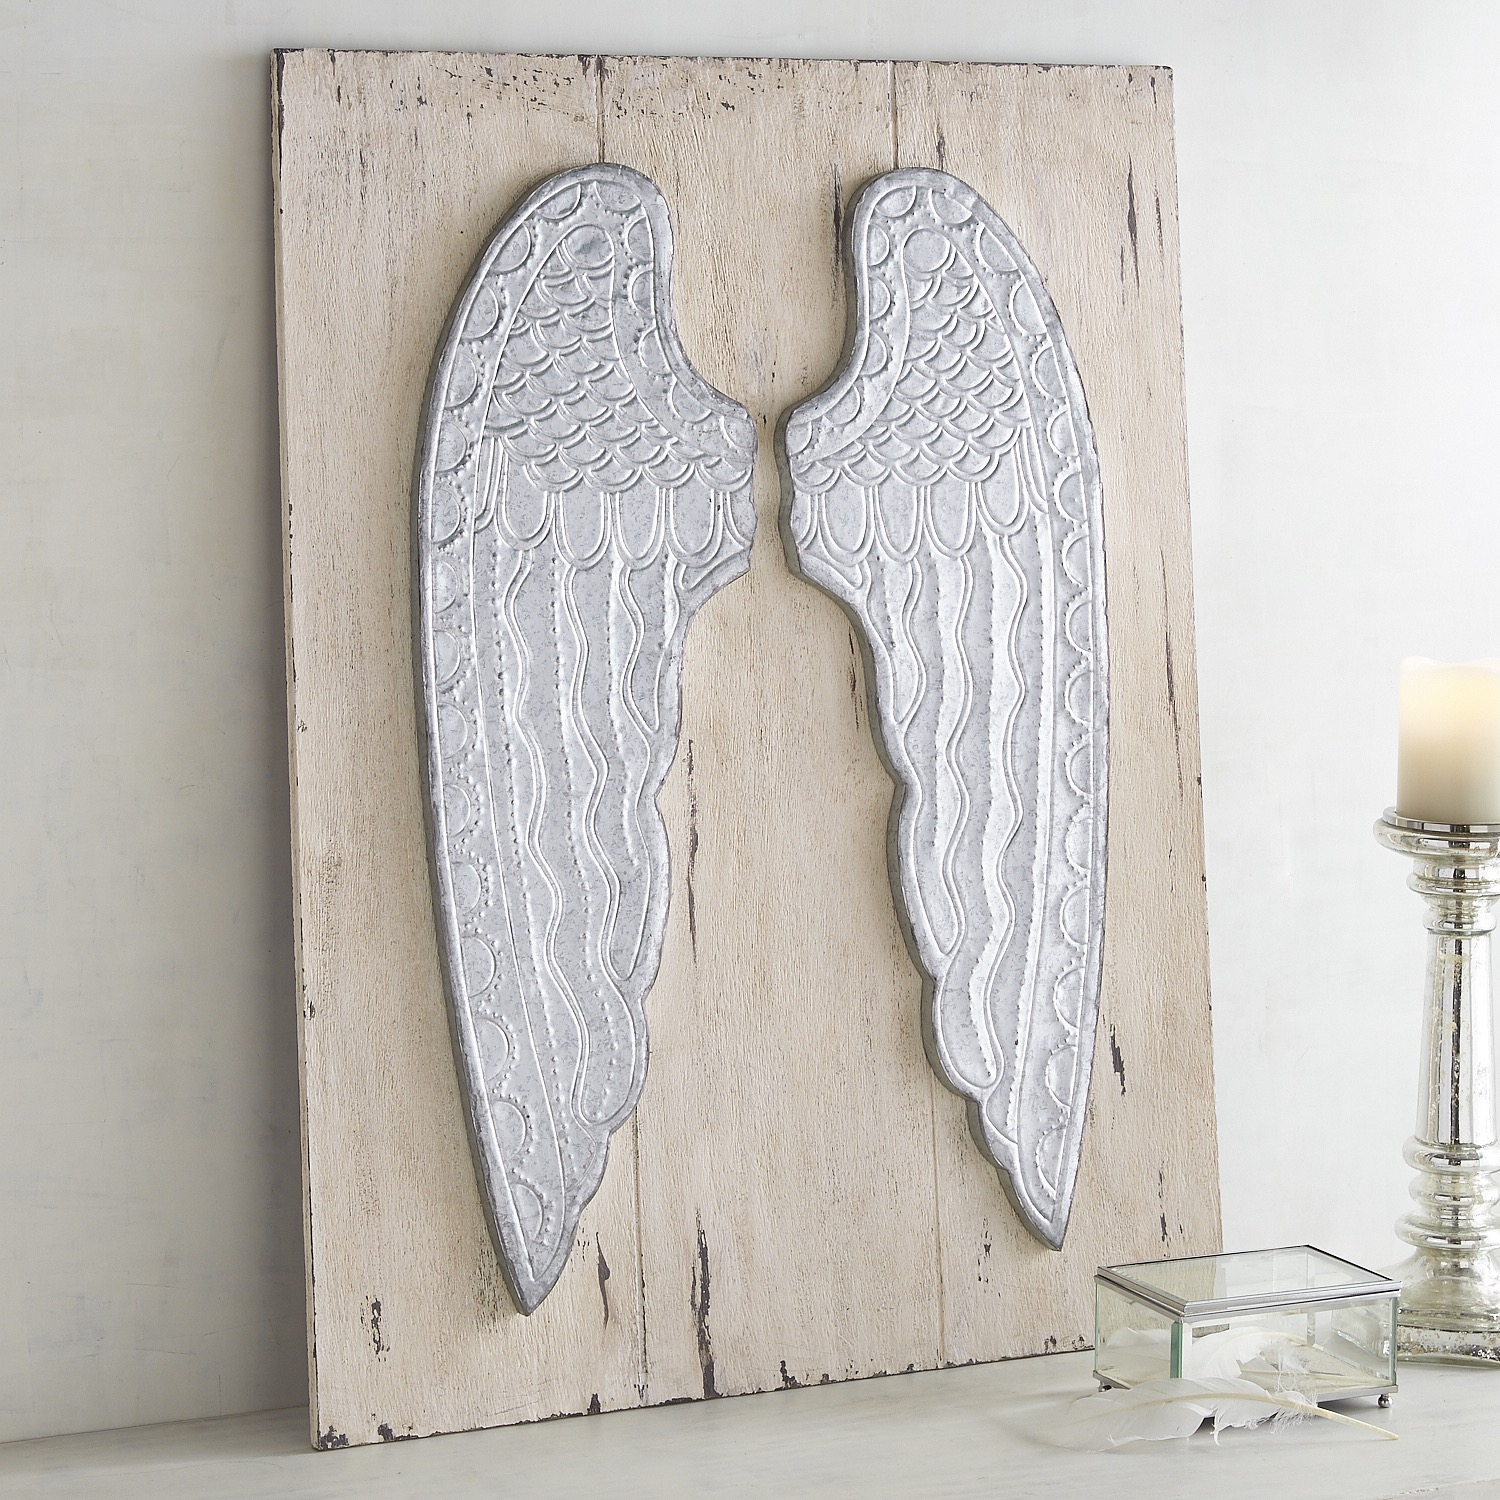 Vintage-Style Angel Wings Wall Decor